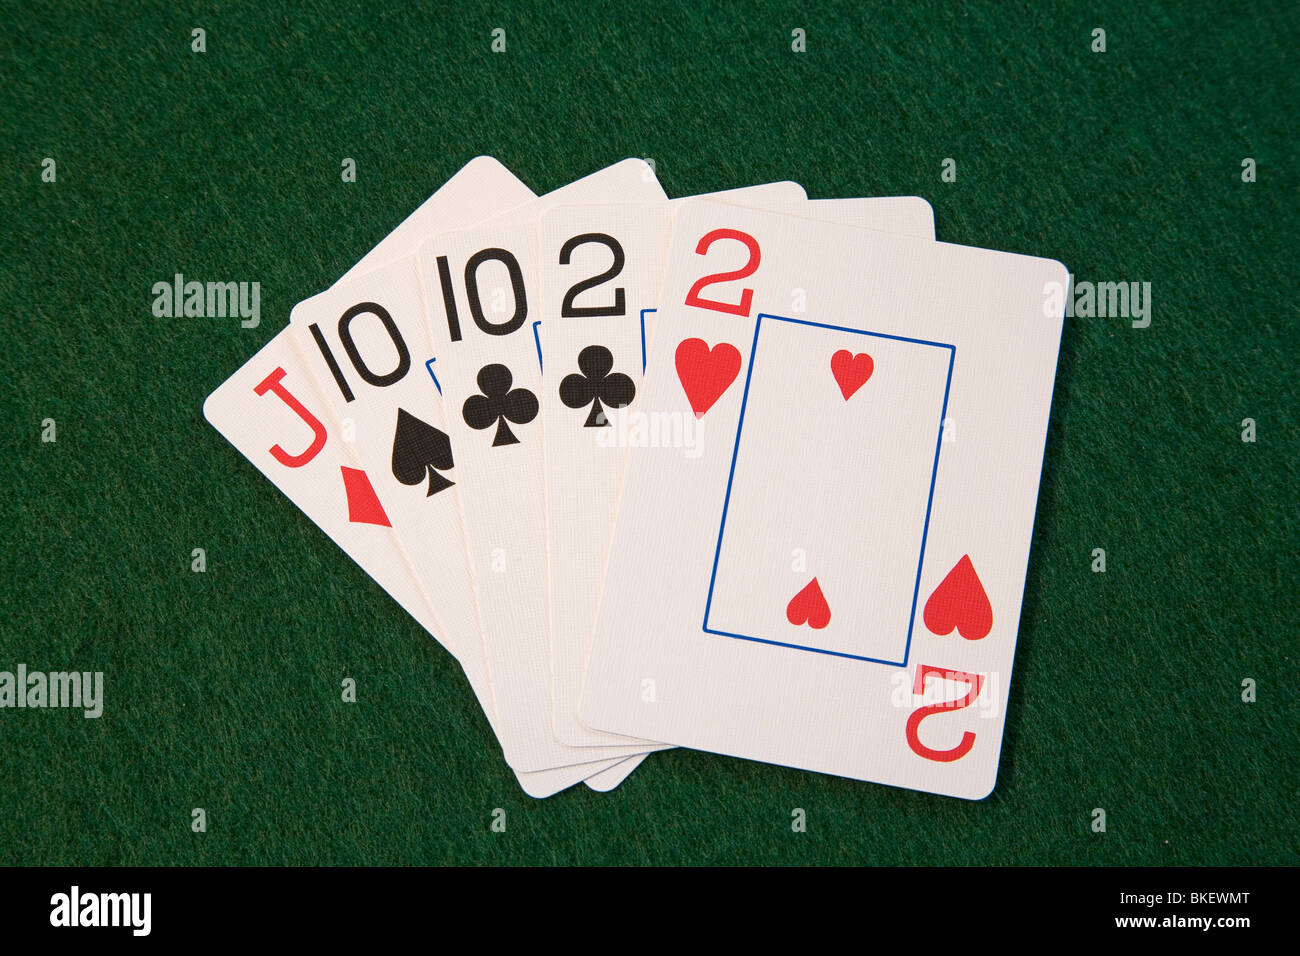 Two Pair Tens And Deuces A Hand In Five Card Draw Or Stud